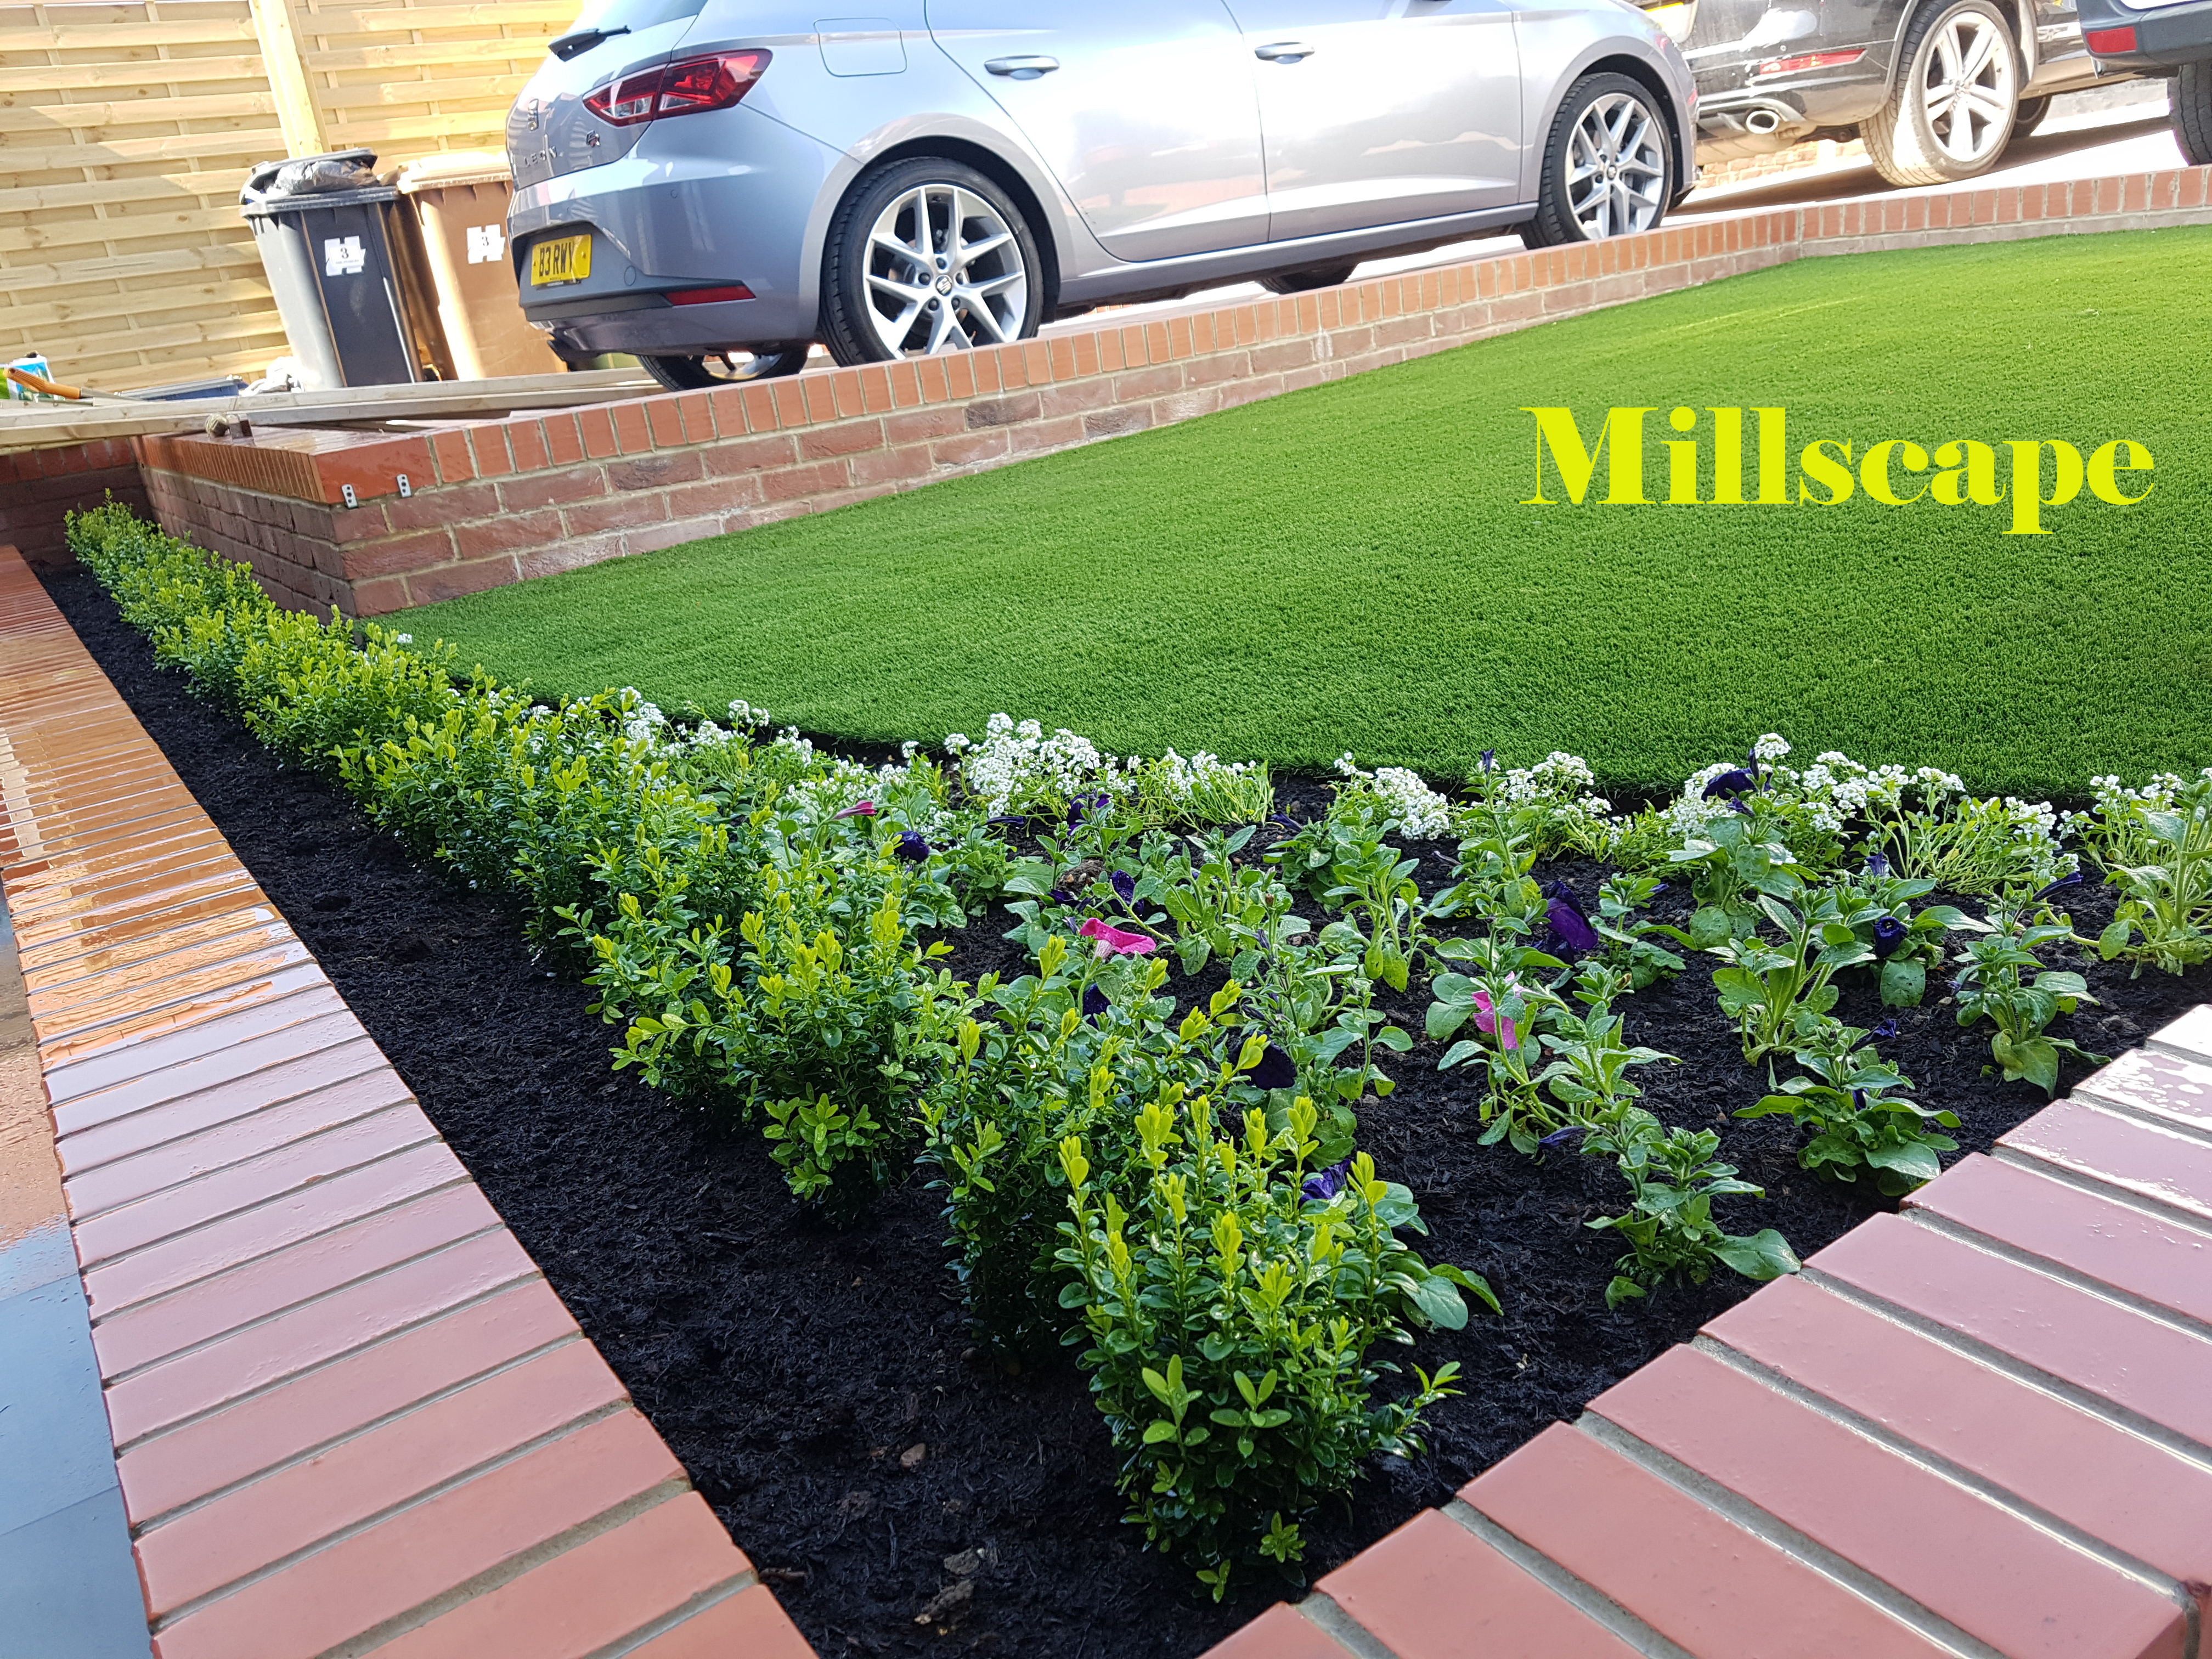 Millscape landscaping Nw-London